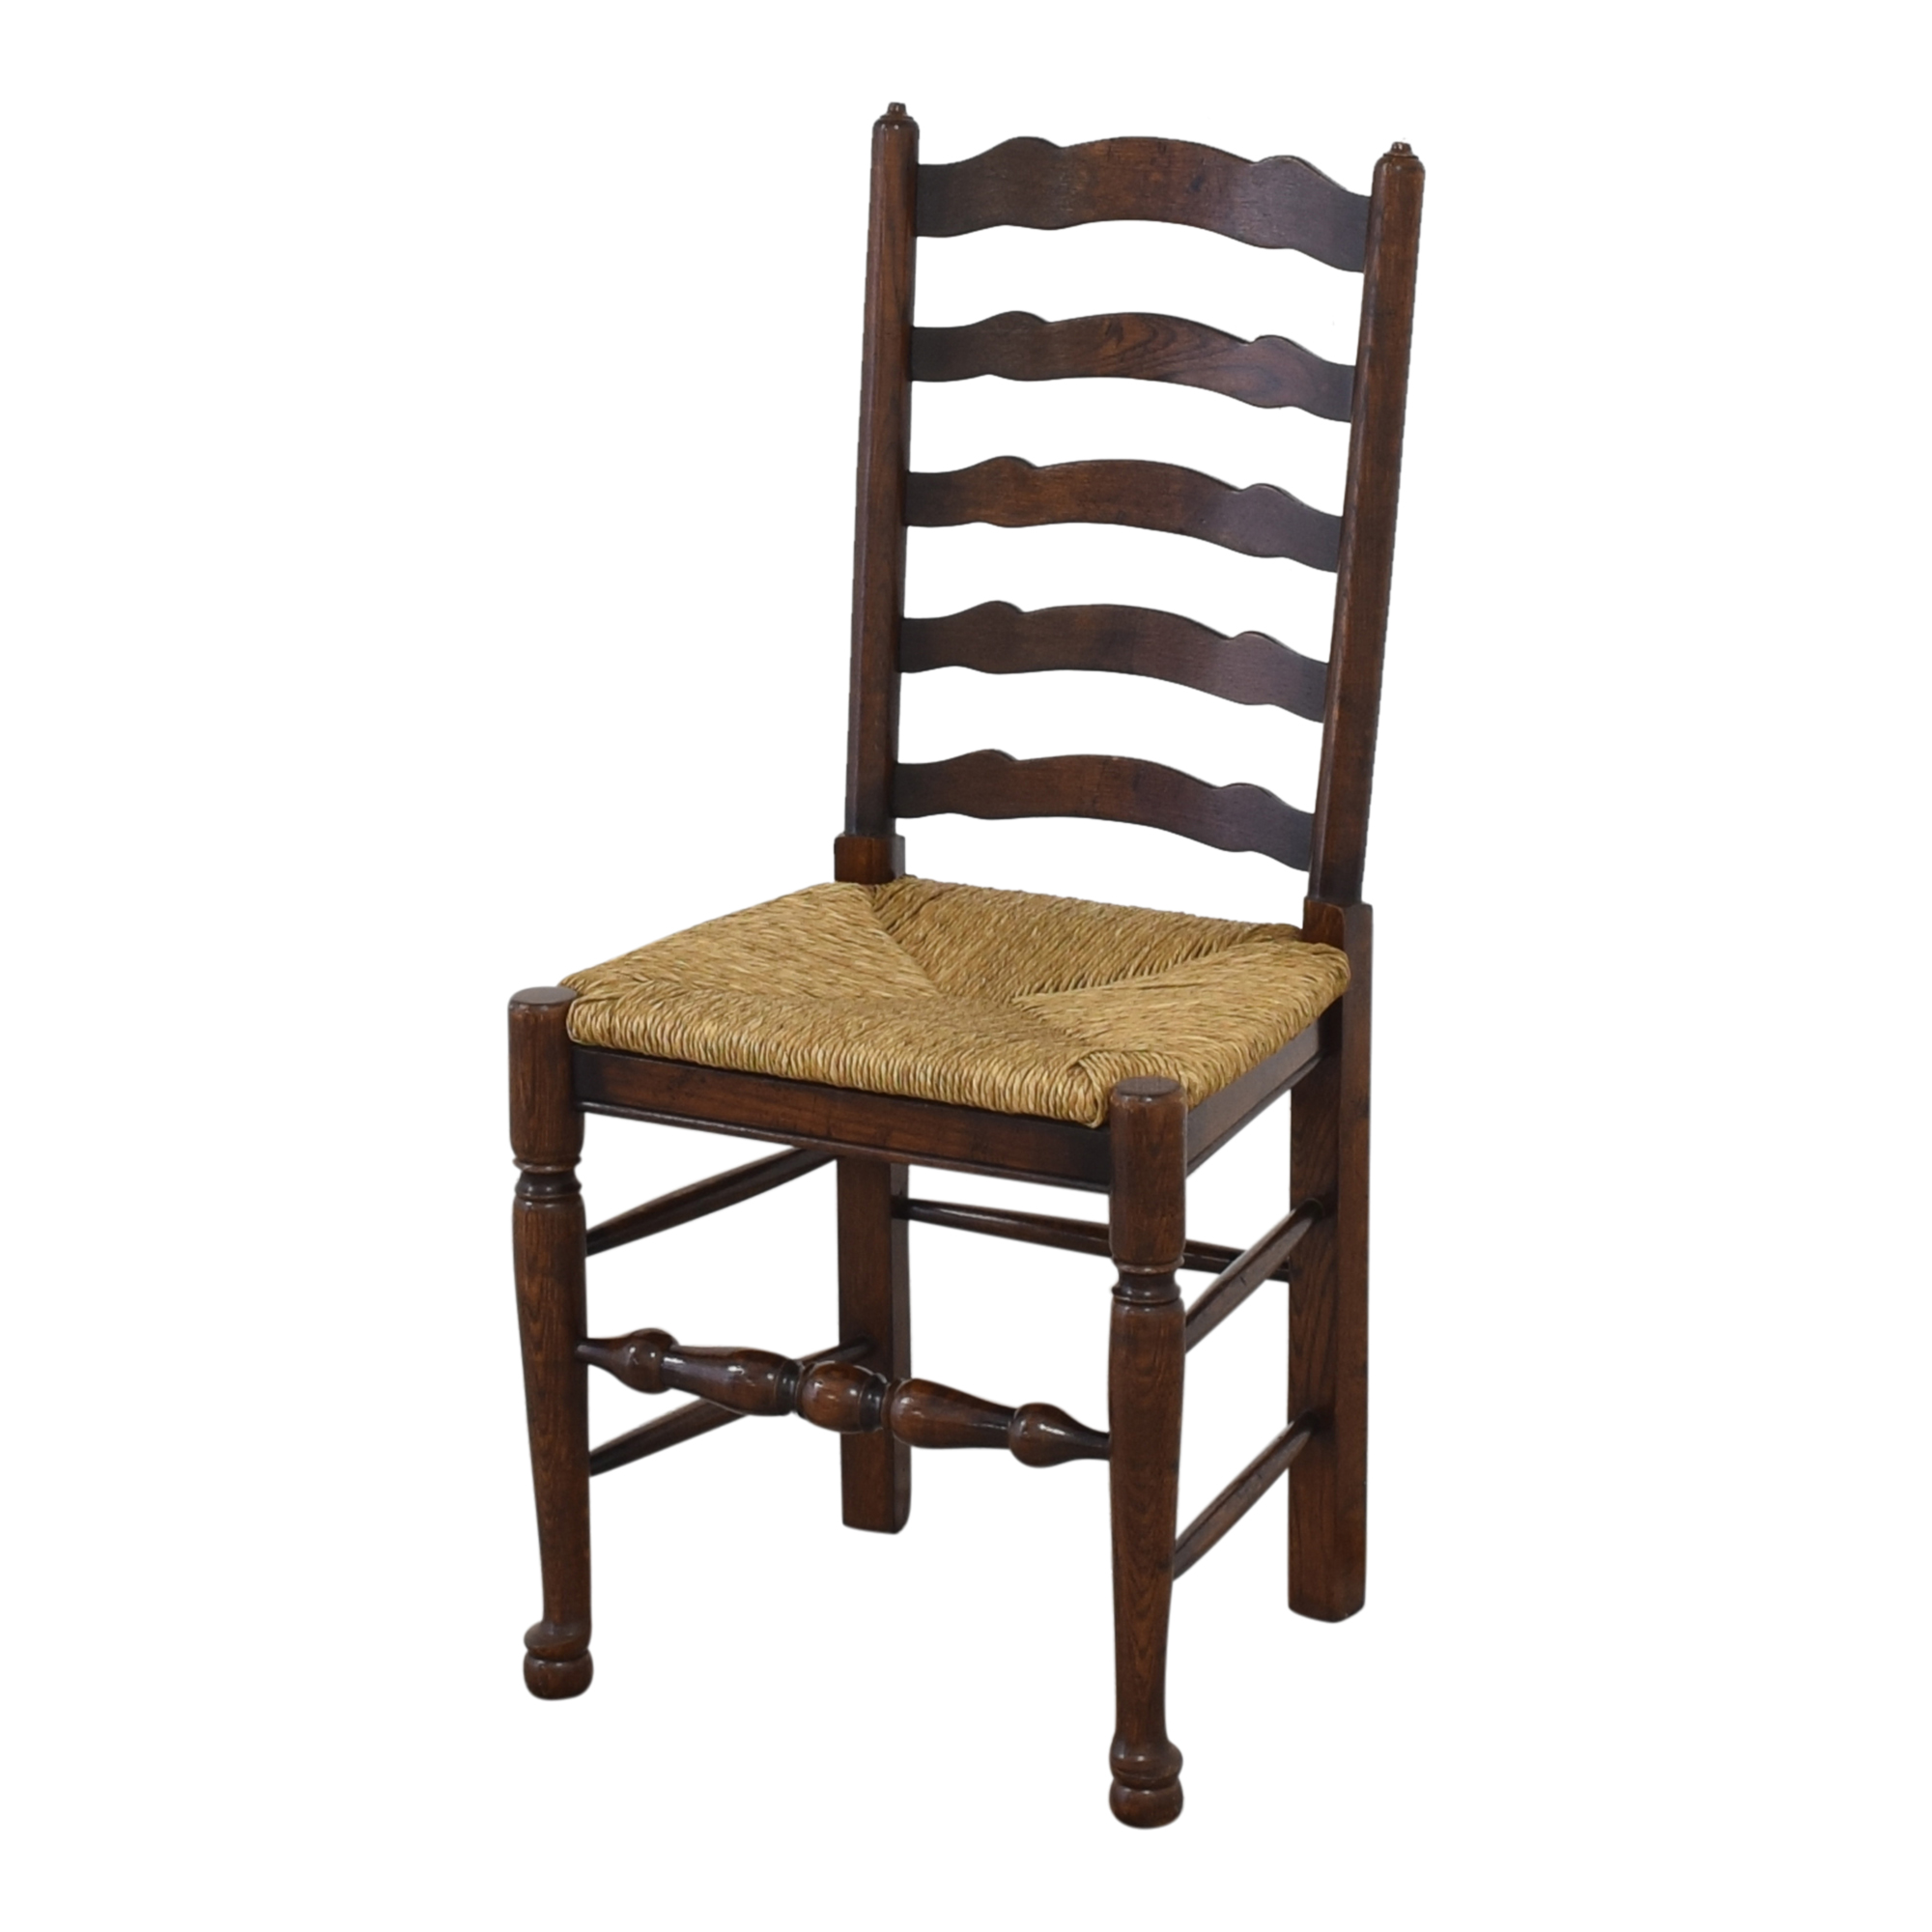 Pottery Barn Ladder Back Dining Chairs / Dining Chairs